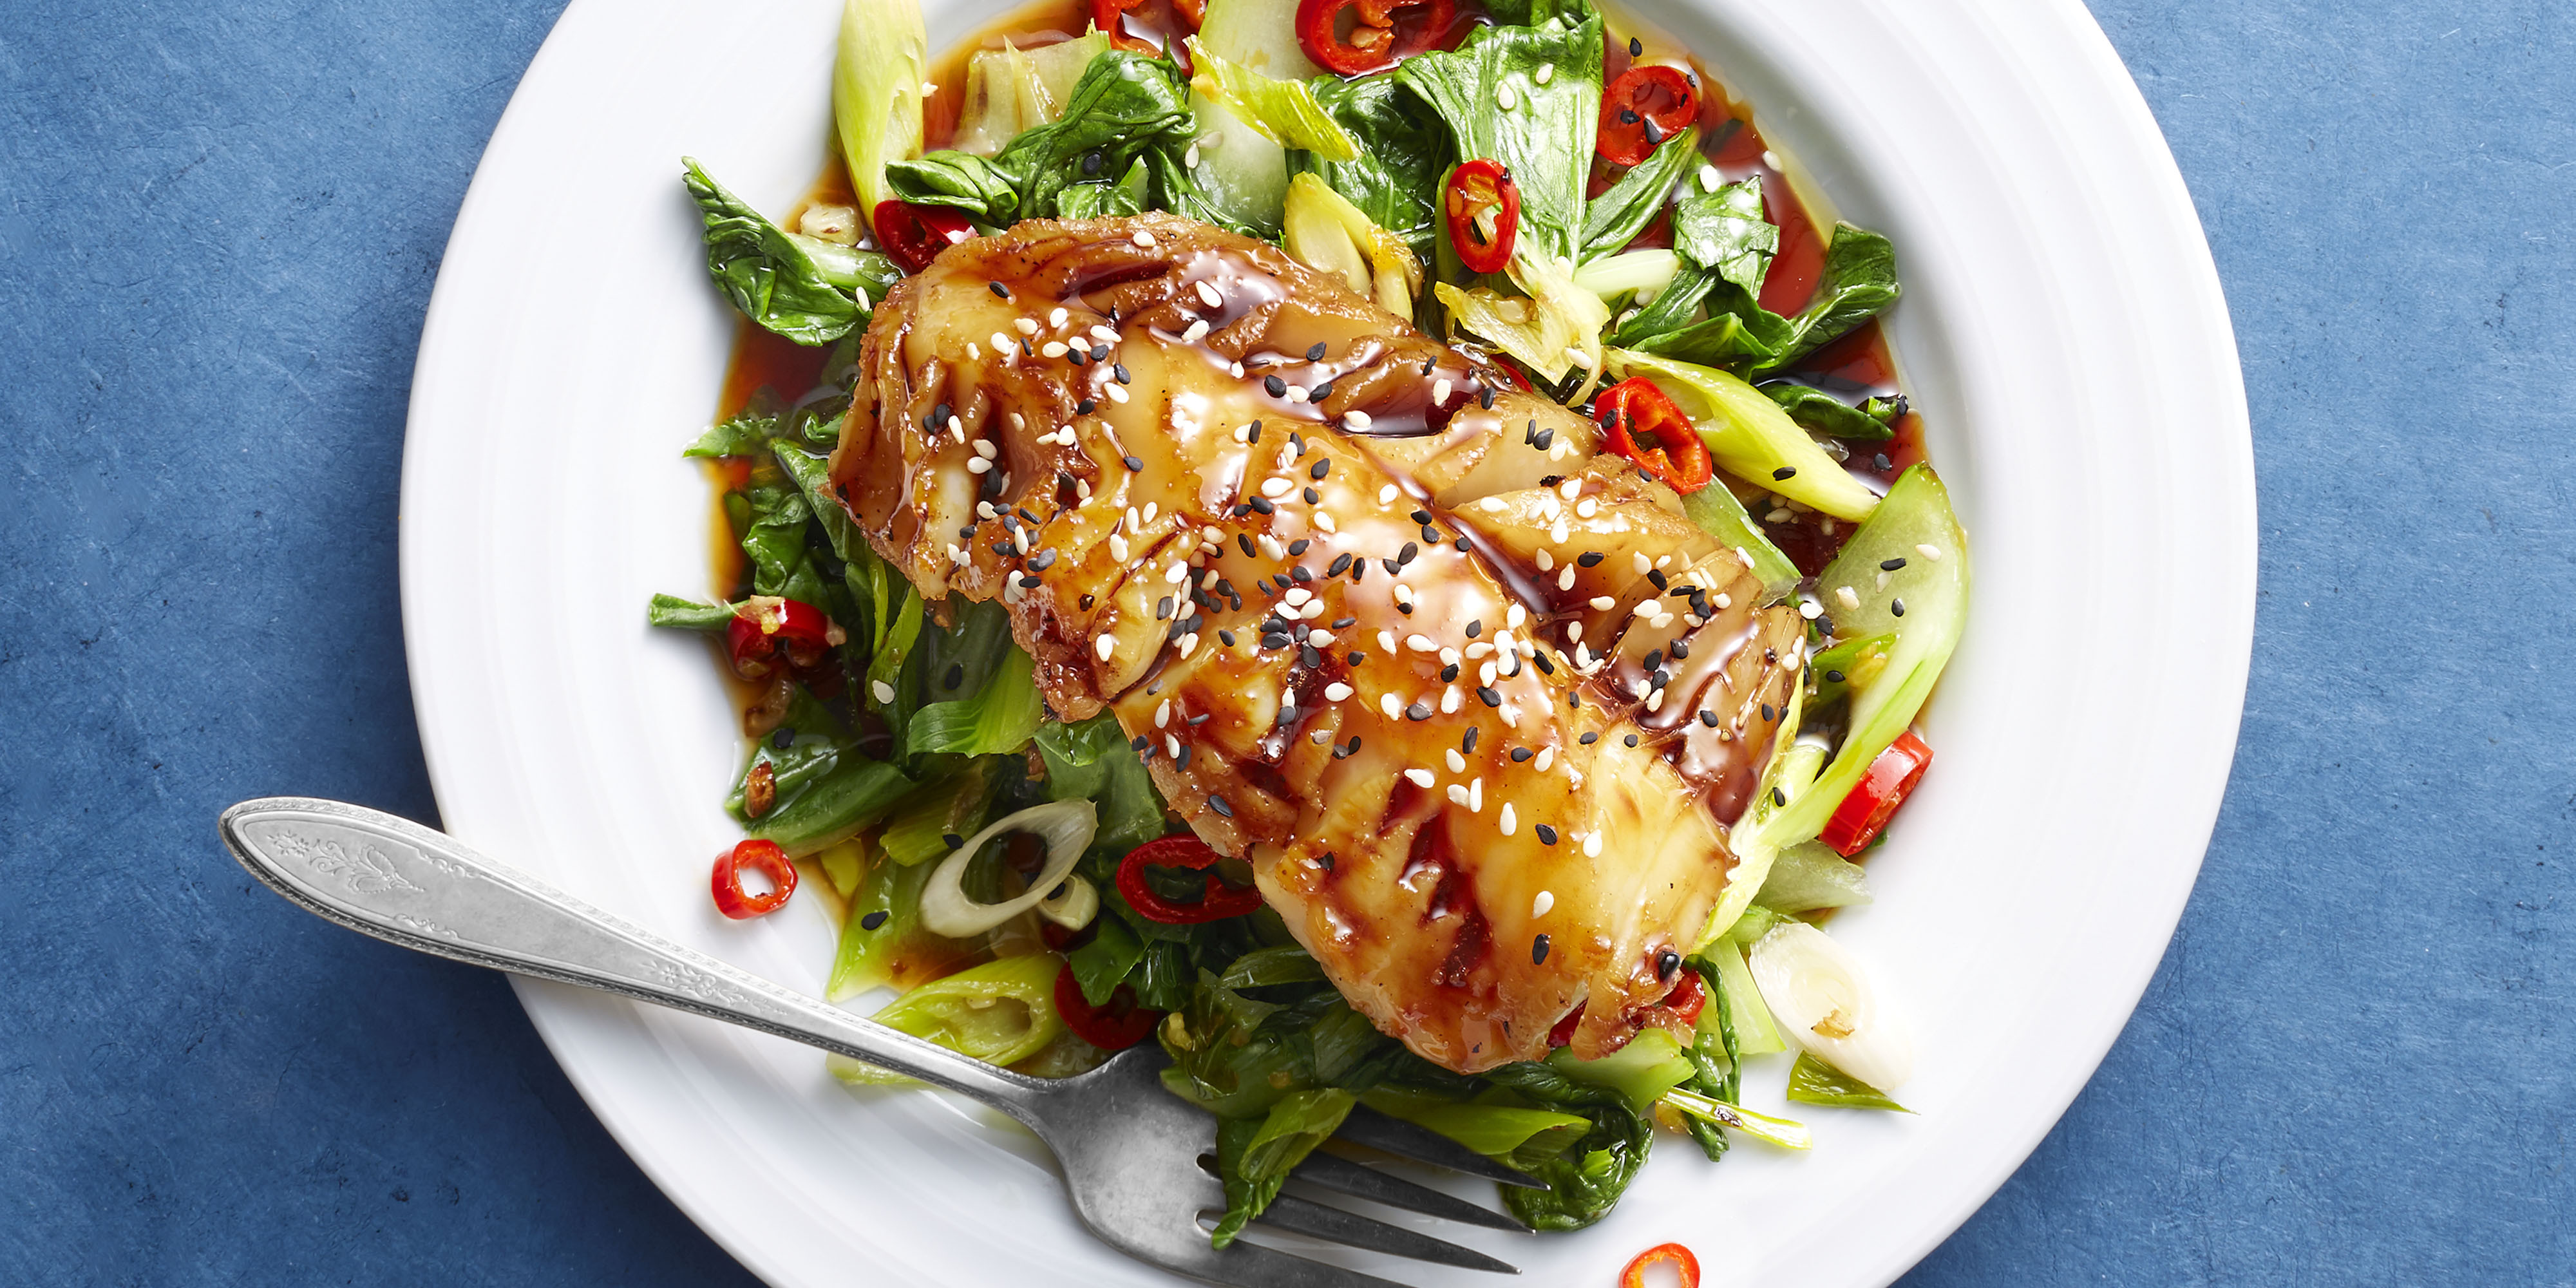 Healthy Low Calorie Dinners  28 Easy Low Calorie Meals Healthy Dinner Recipes Under